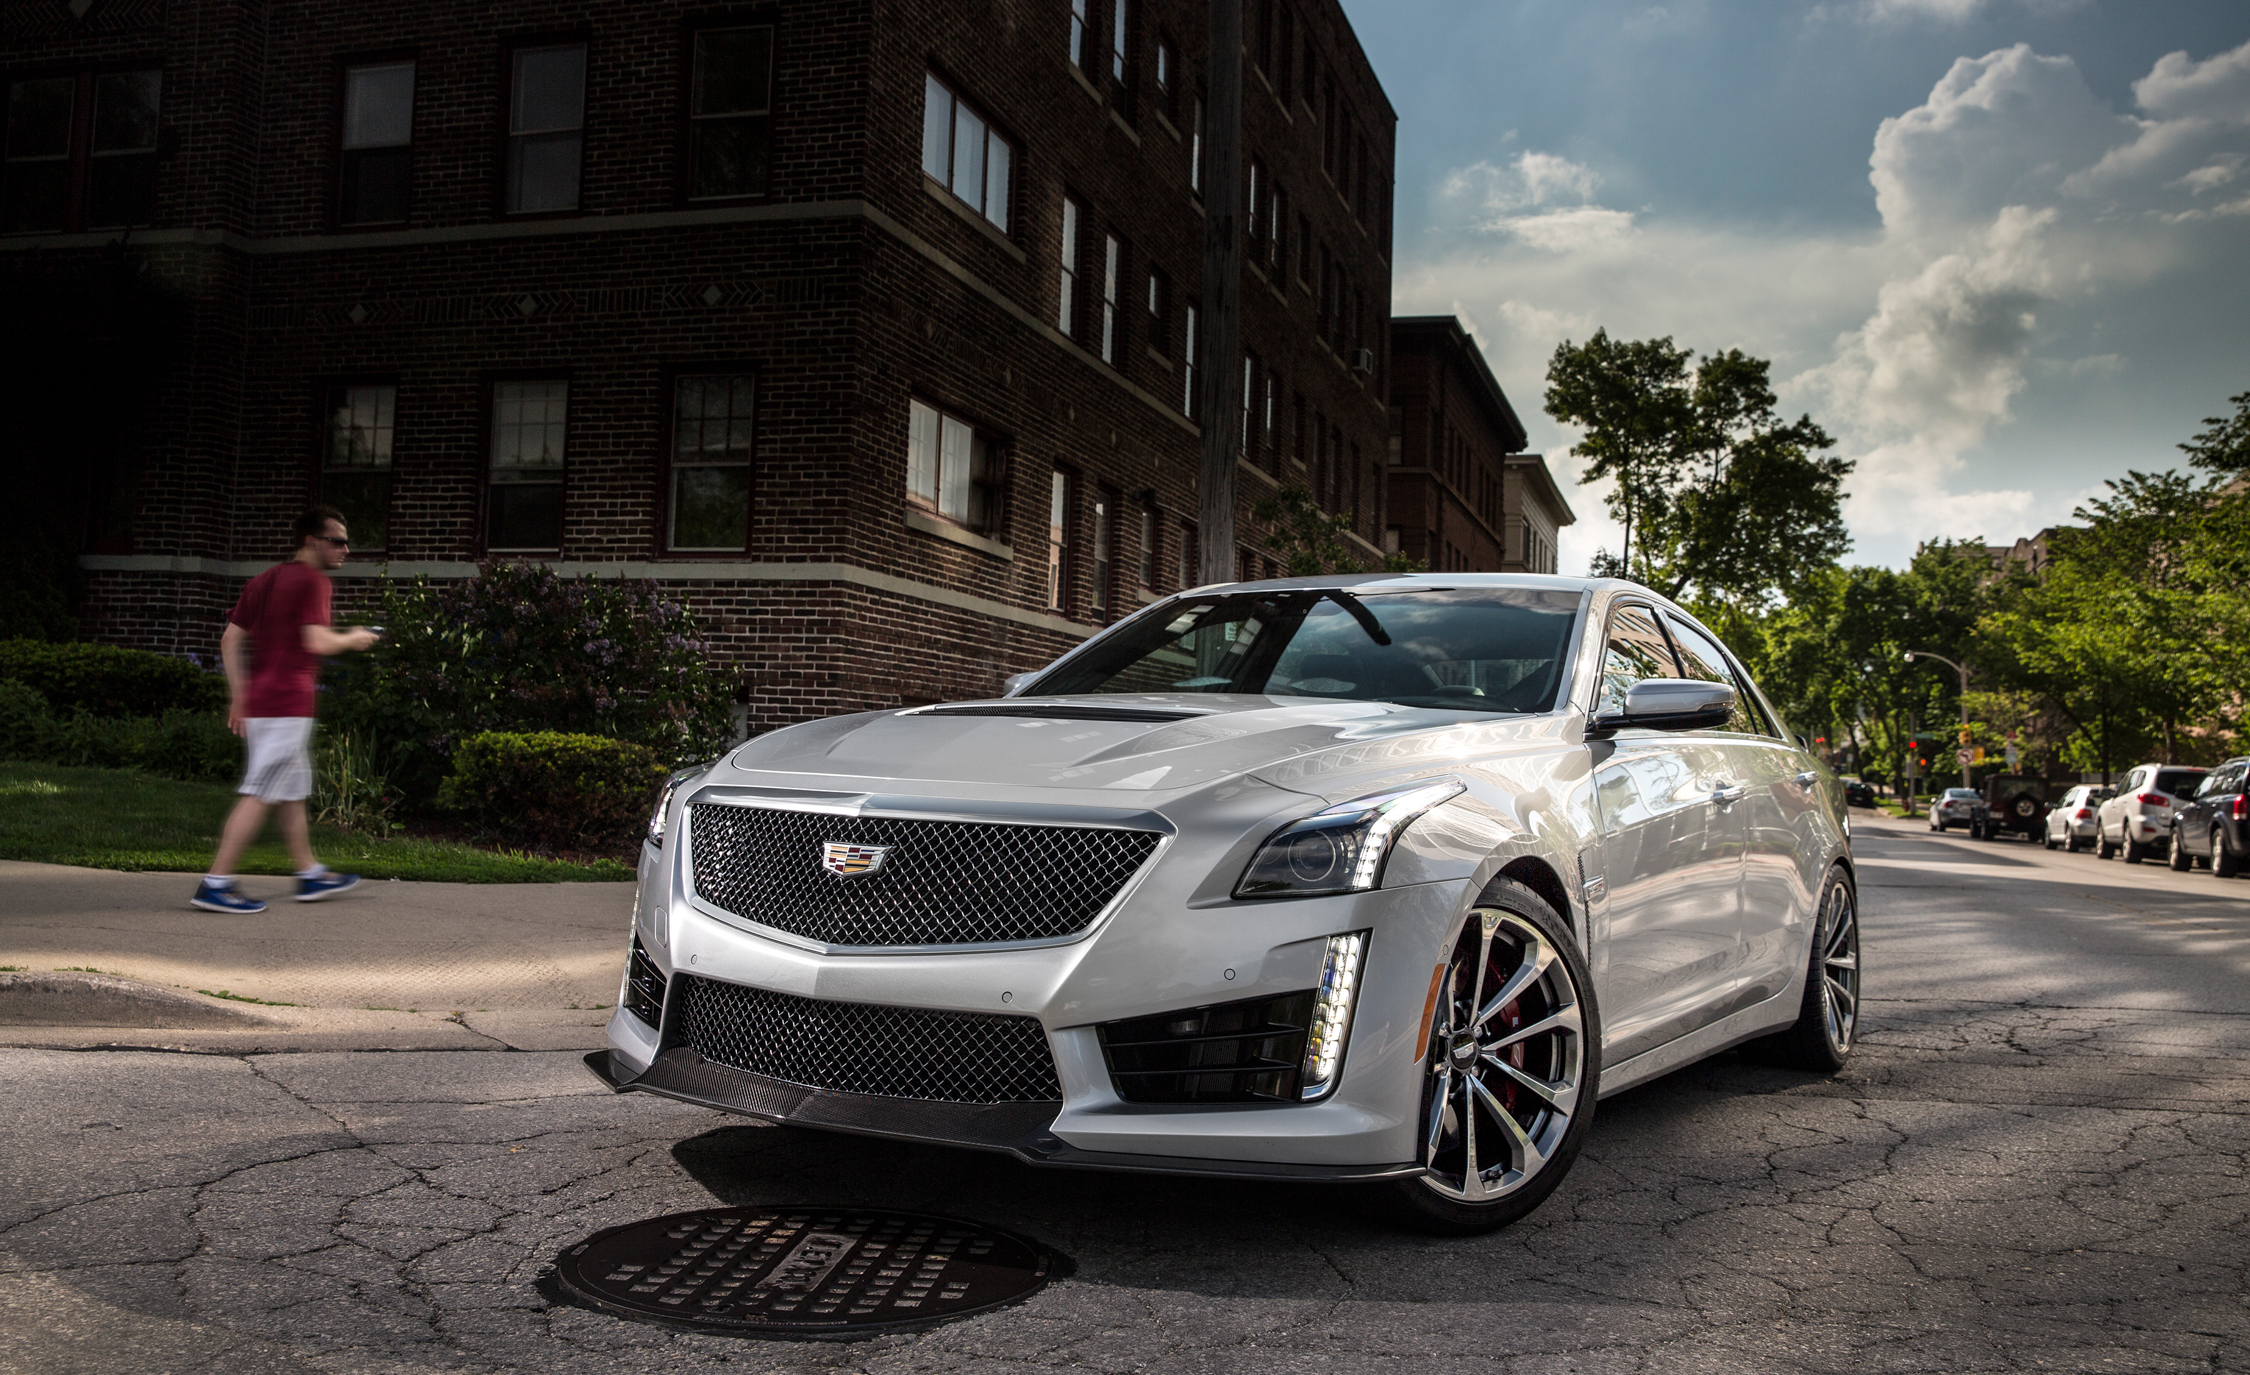 2016 Cadillac CTS-V Exterior Full Front and Side